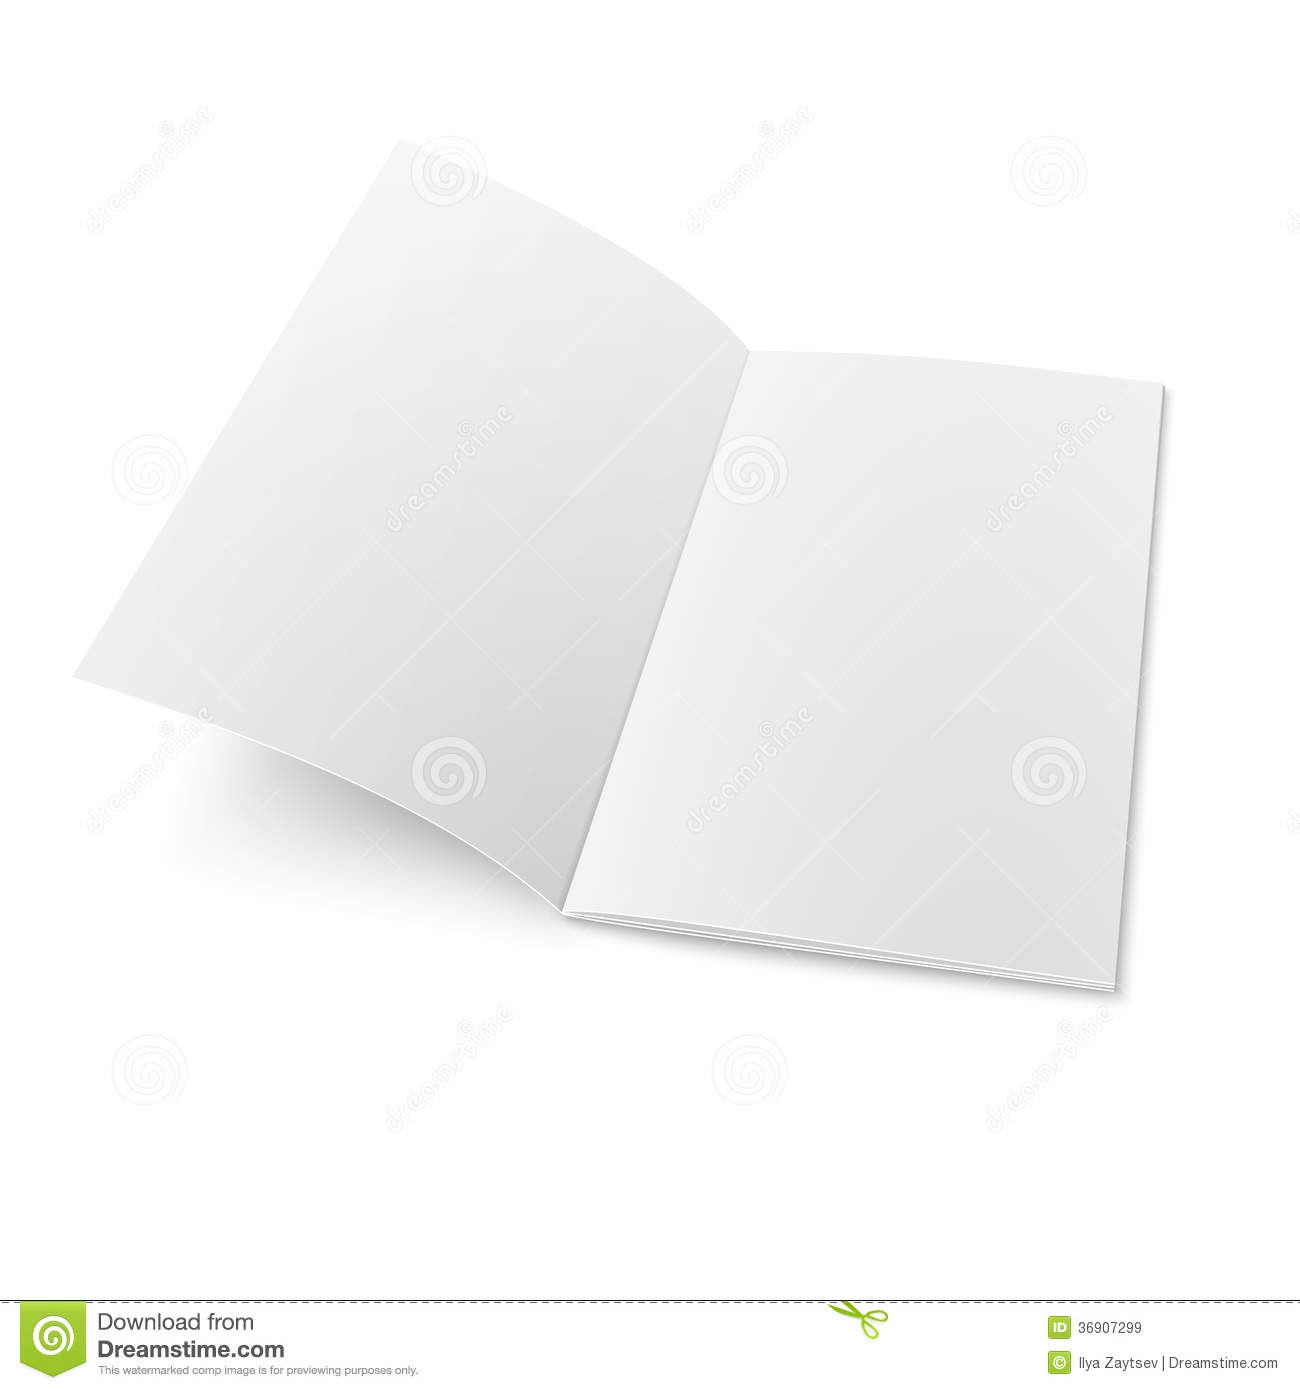 Folded Business Cards Template Business Card Sample - Folded business cards template